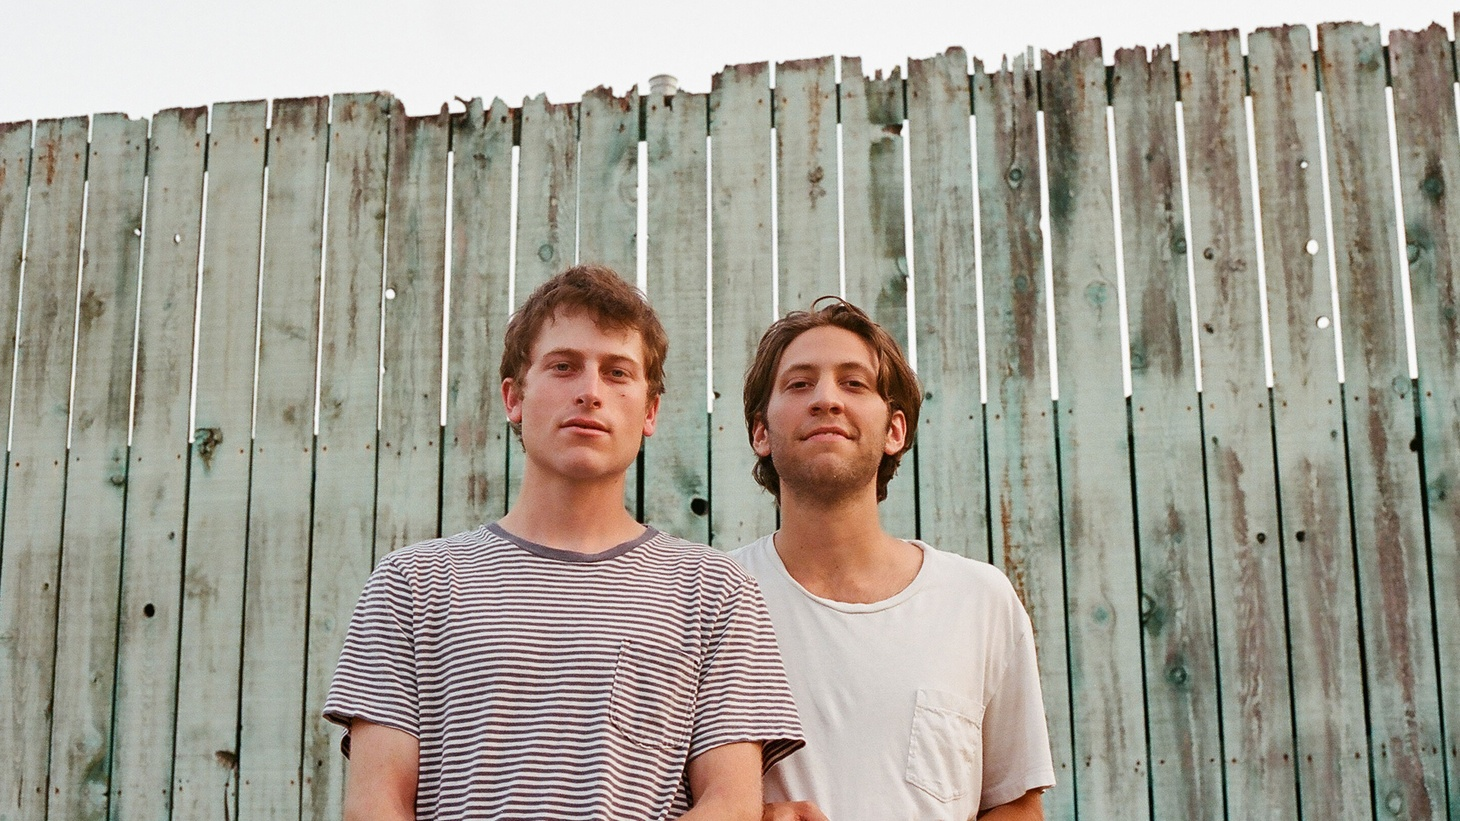 Charlie Martin and Will Taylor first bonded on their mutual love for quiet music and ramen.